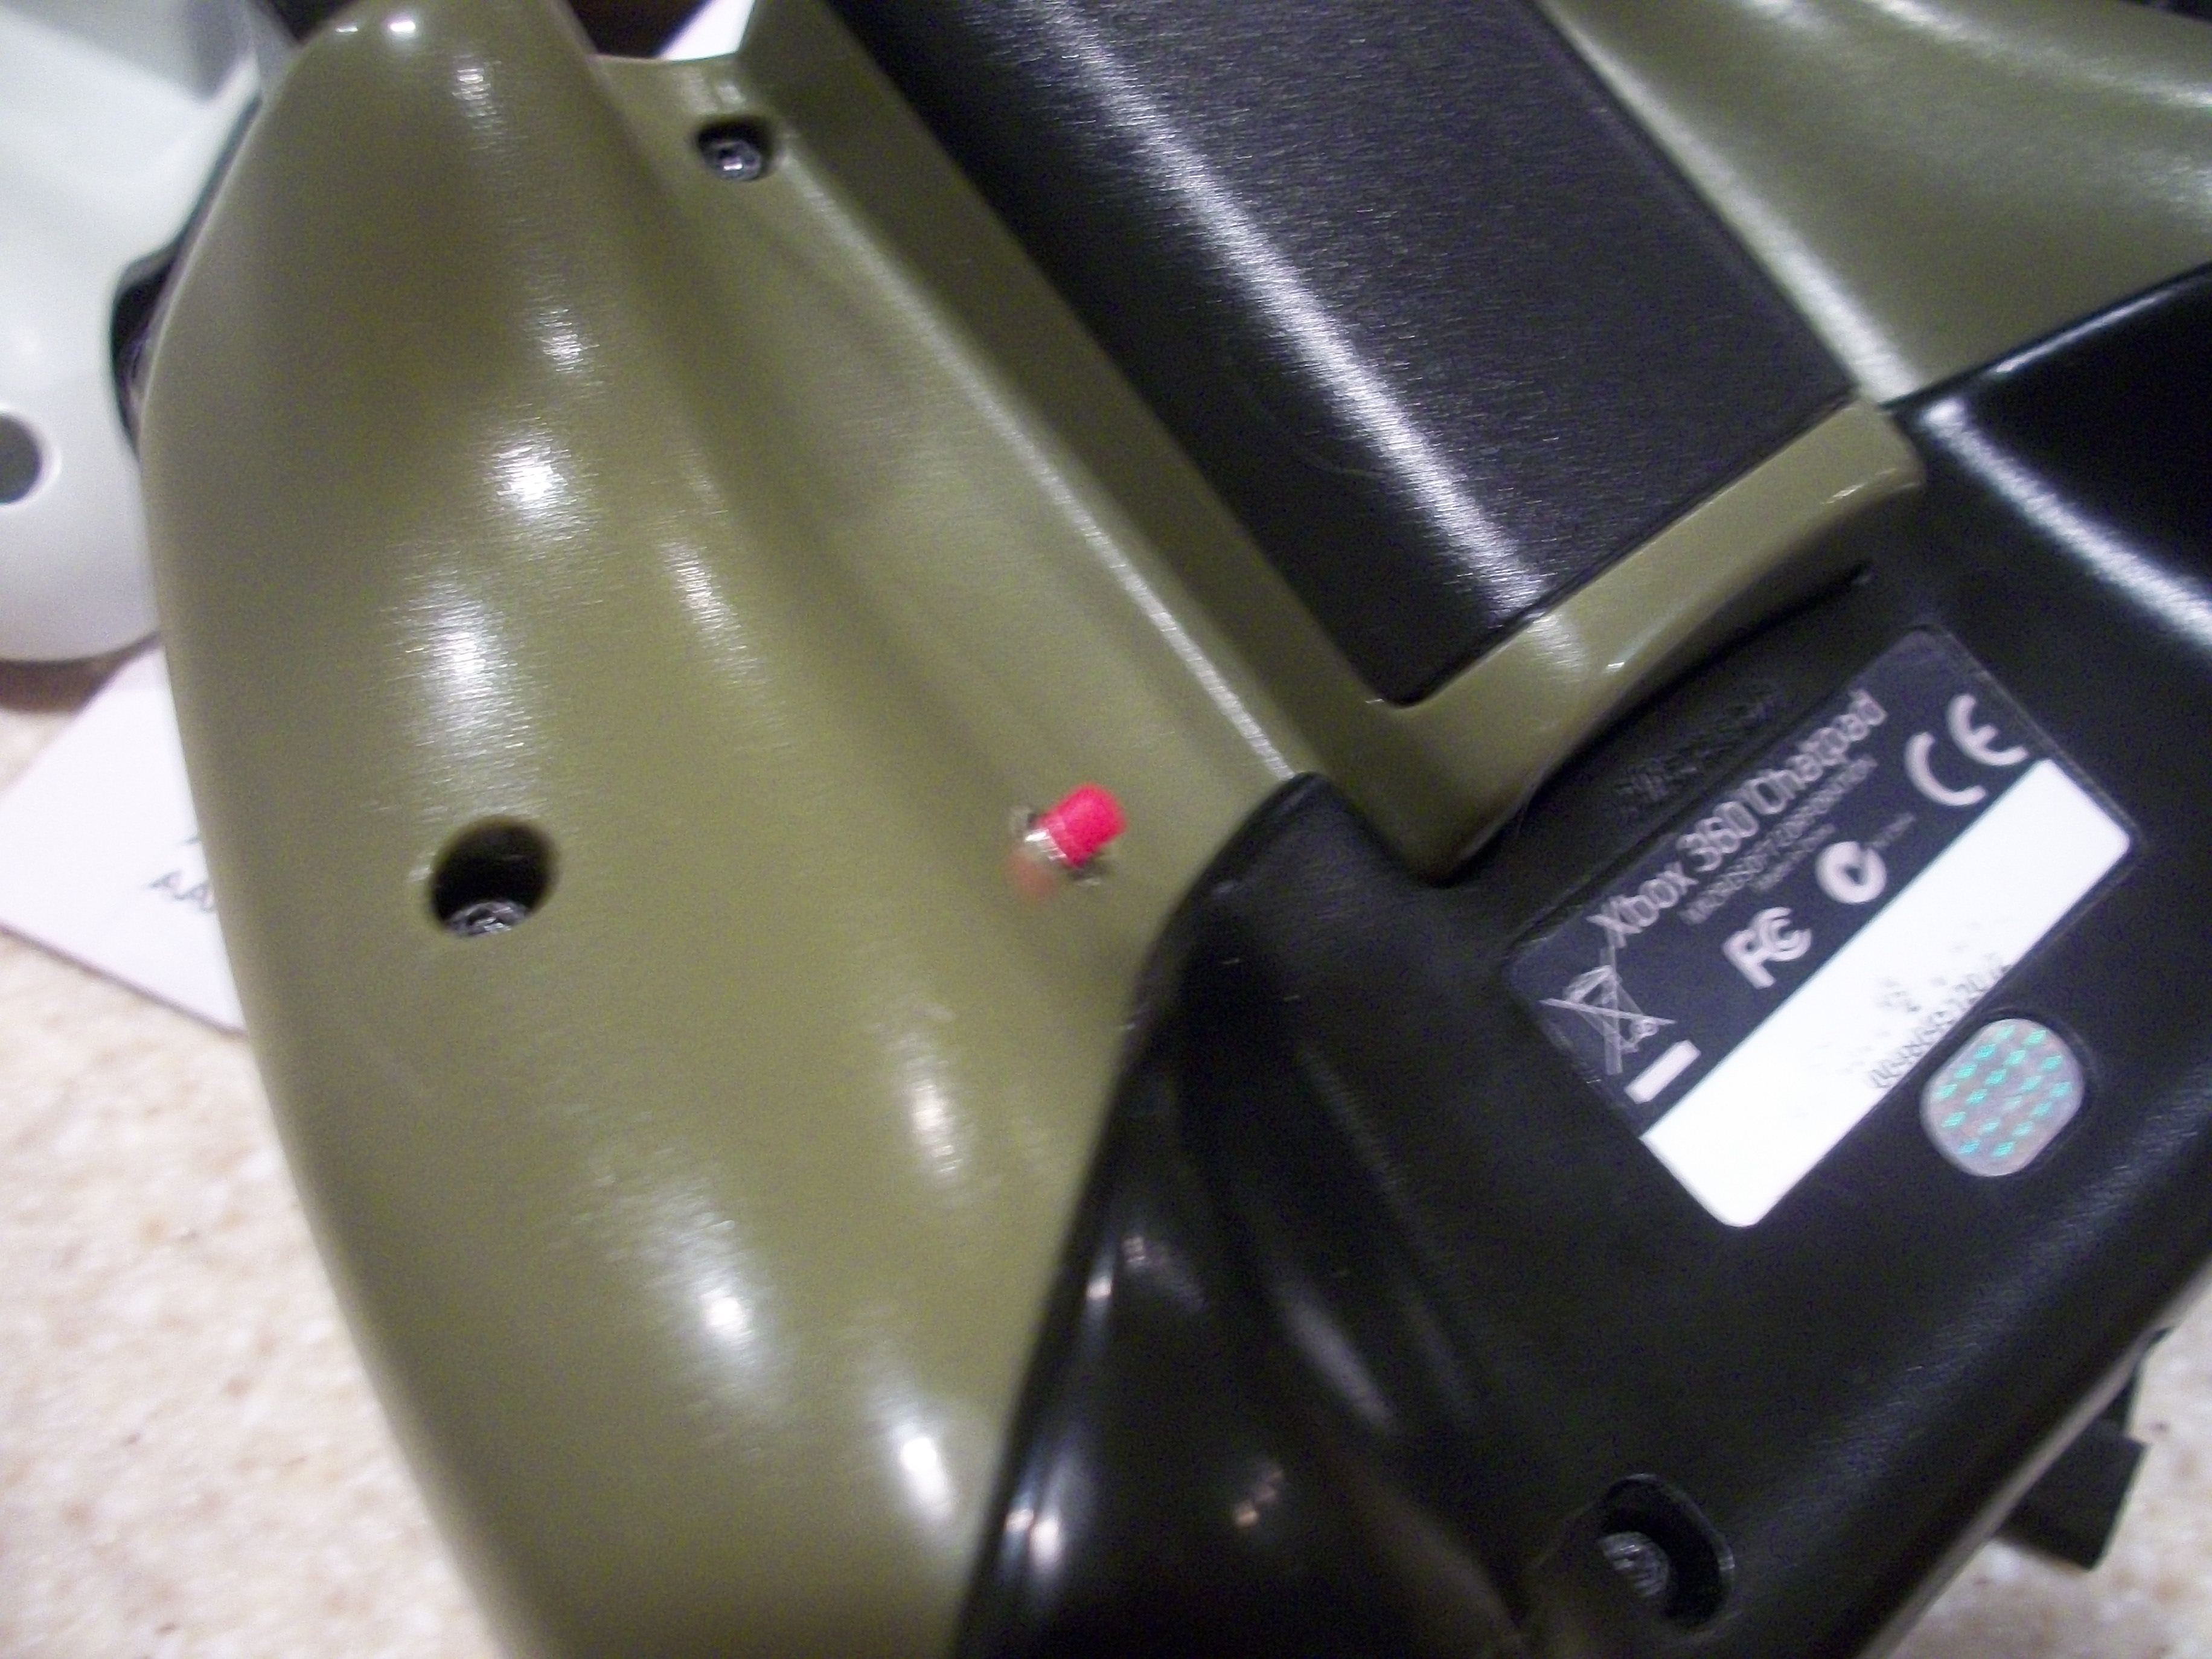 Move buttons on your xbox controller